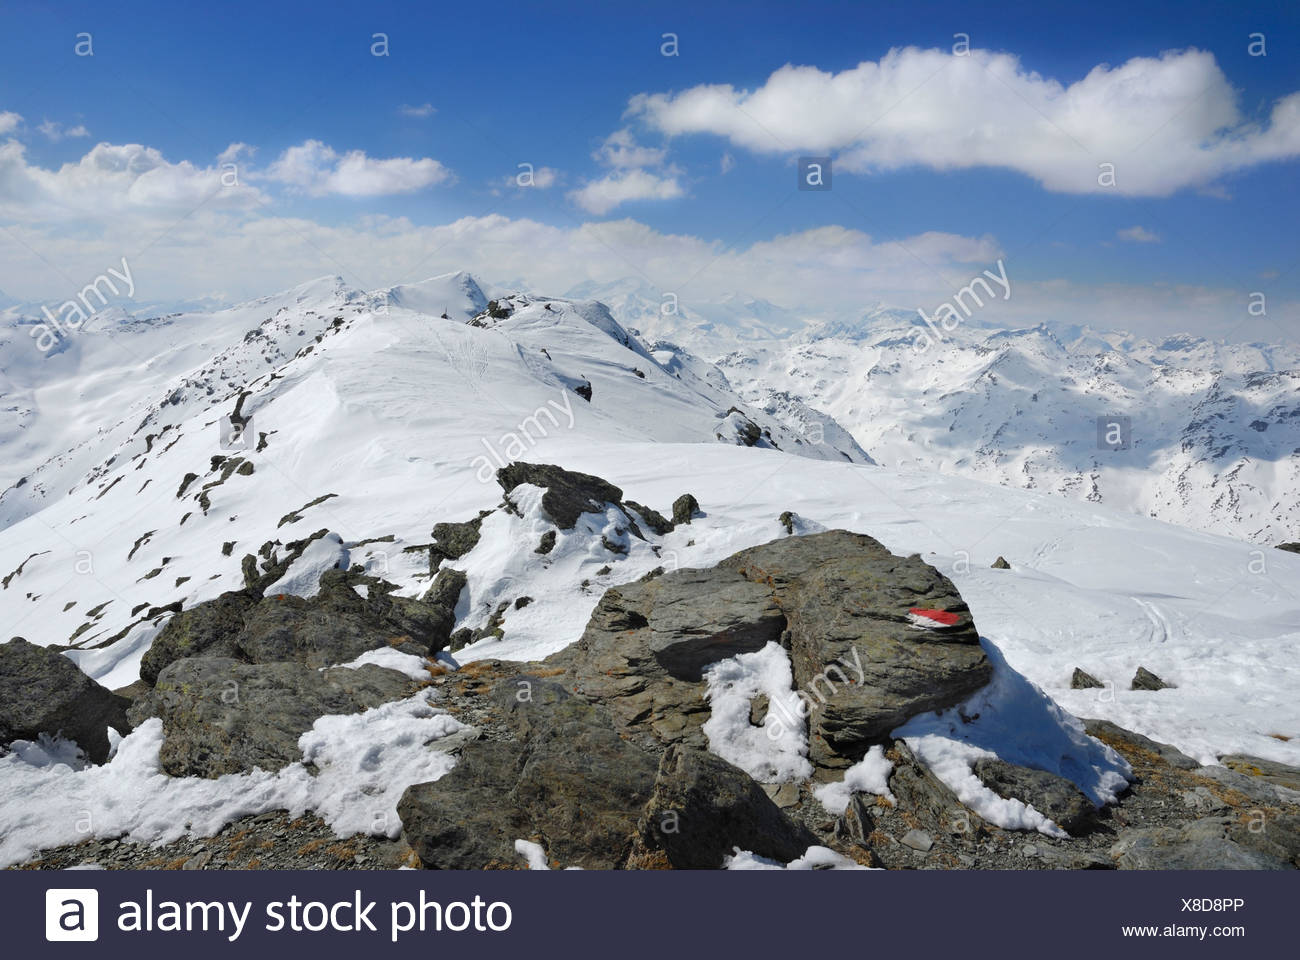 Marker of a ski tour route on metamorphic primitive rocks with footprints in the snow, Zillertal main crest at back, Tux Glunge - Stock Image